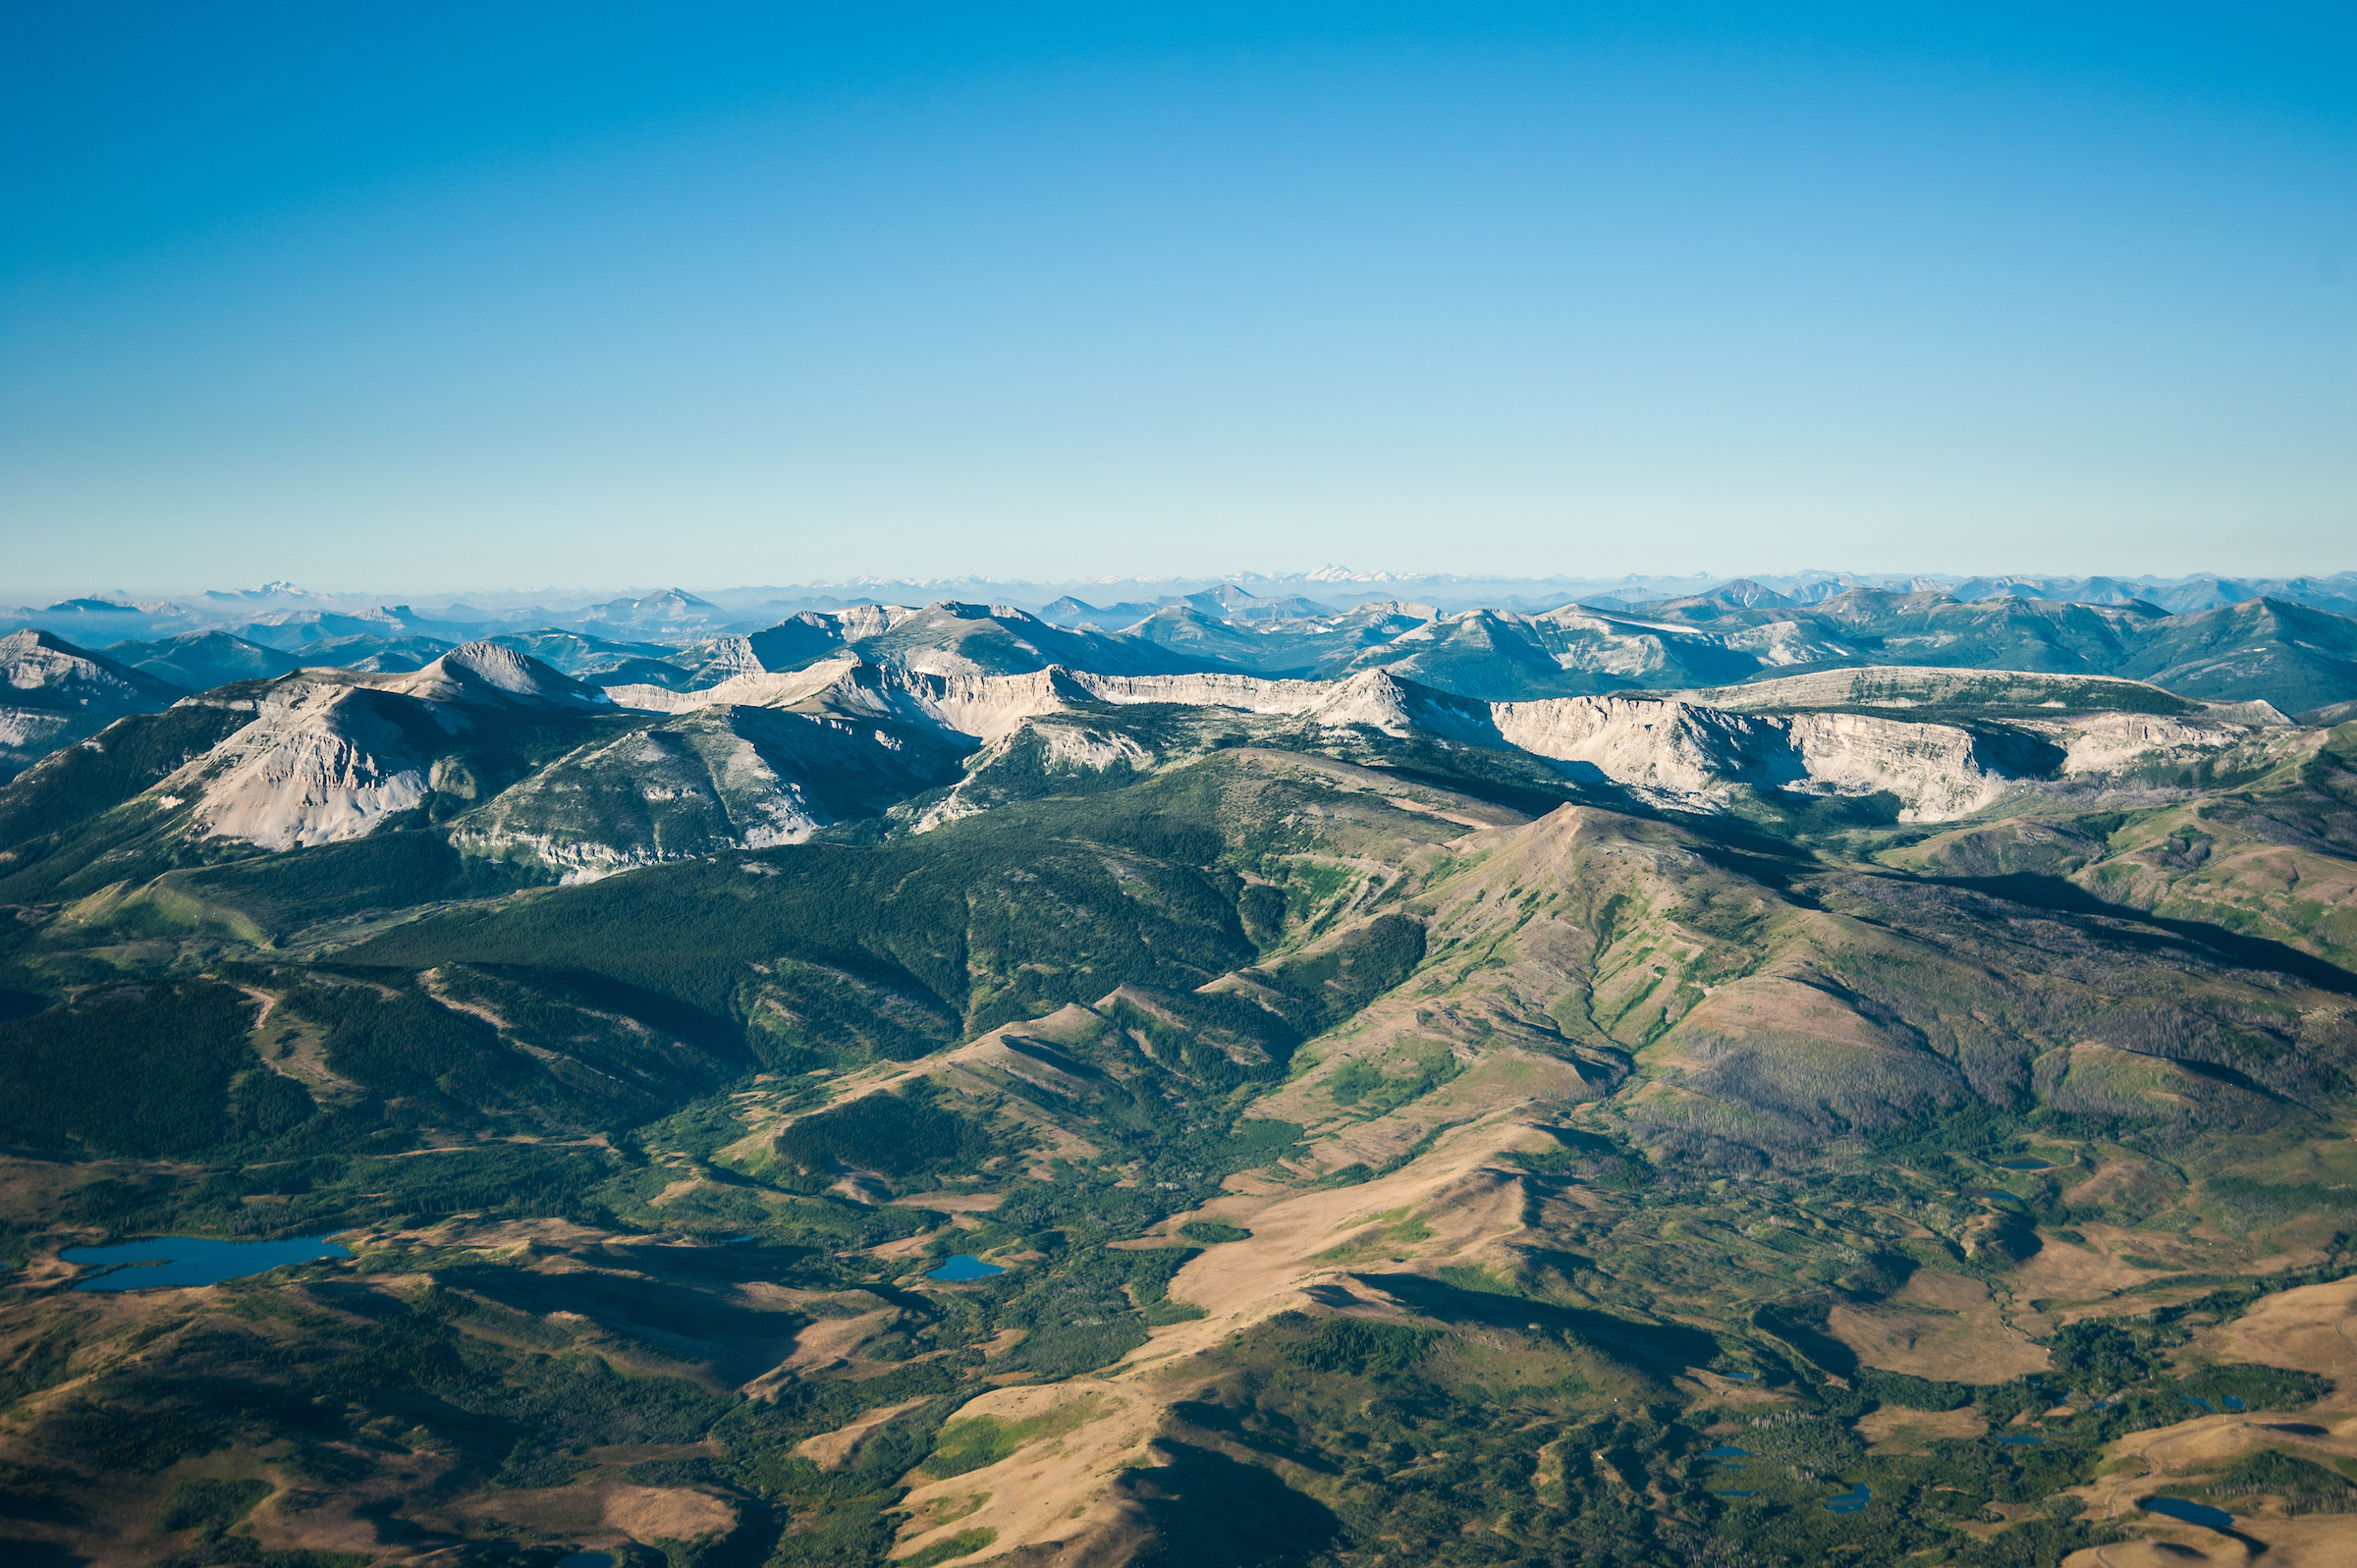 An aerial view of the Badger Two Medicine, and the in the distance, the Bob Marshall Wilderness area. This area of the Badger Two Medicine is now protected from oil and gas exploration and leasing.